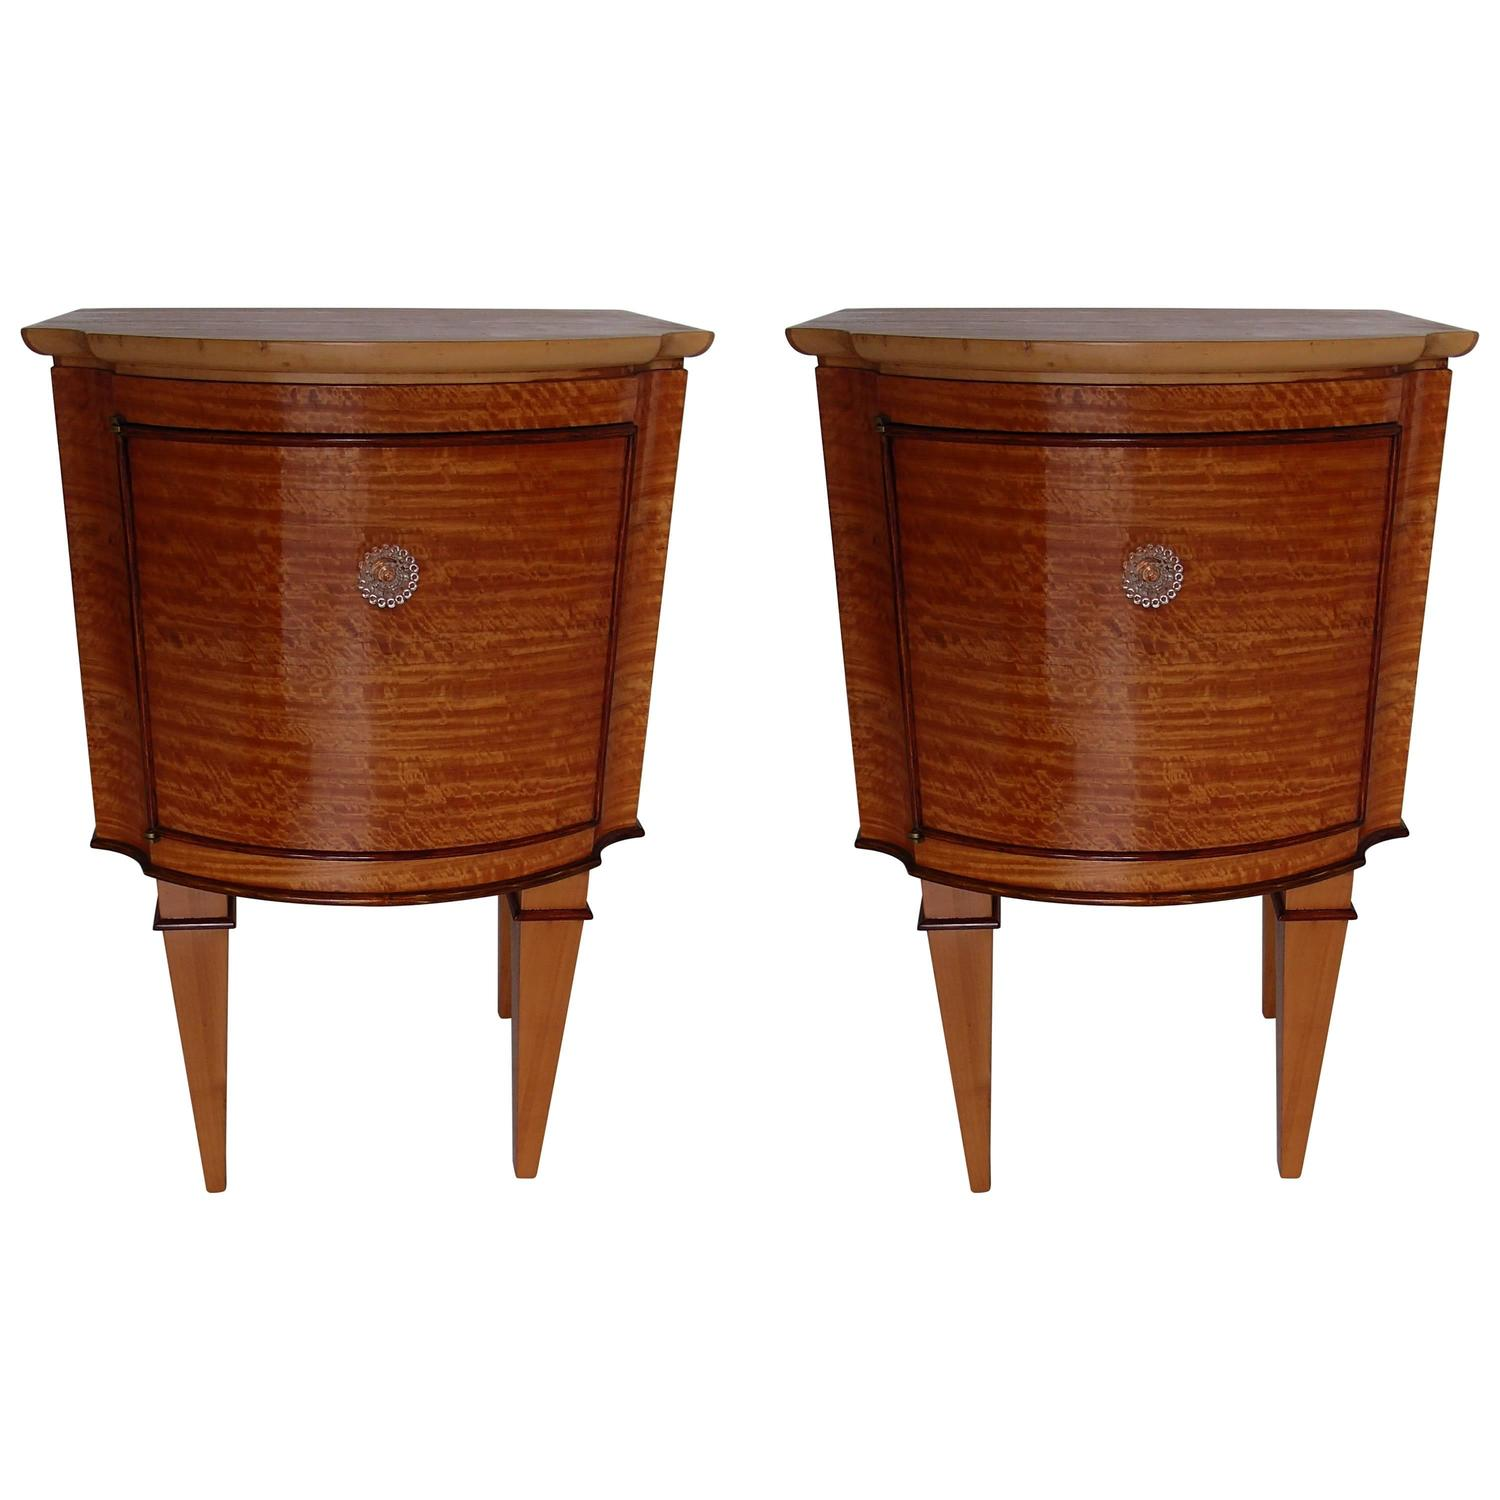 Side table with drawer and shelf - Pair Of Very Elegant 1940s Lemon Wood Side Tables Nightstands